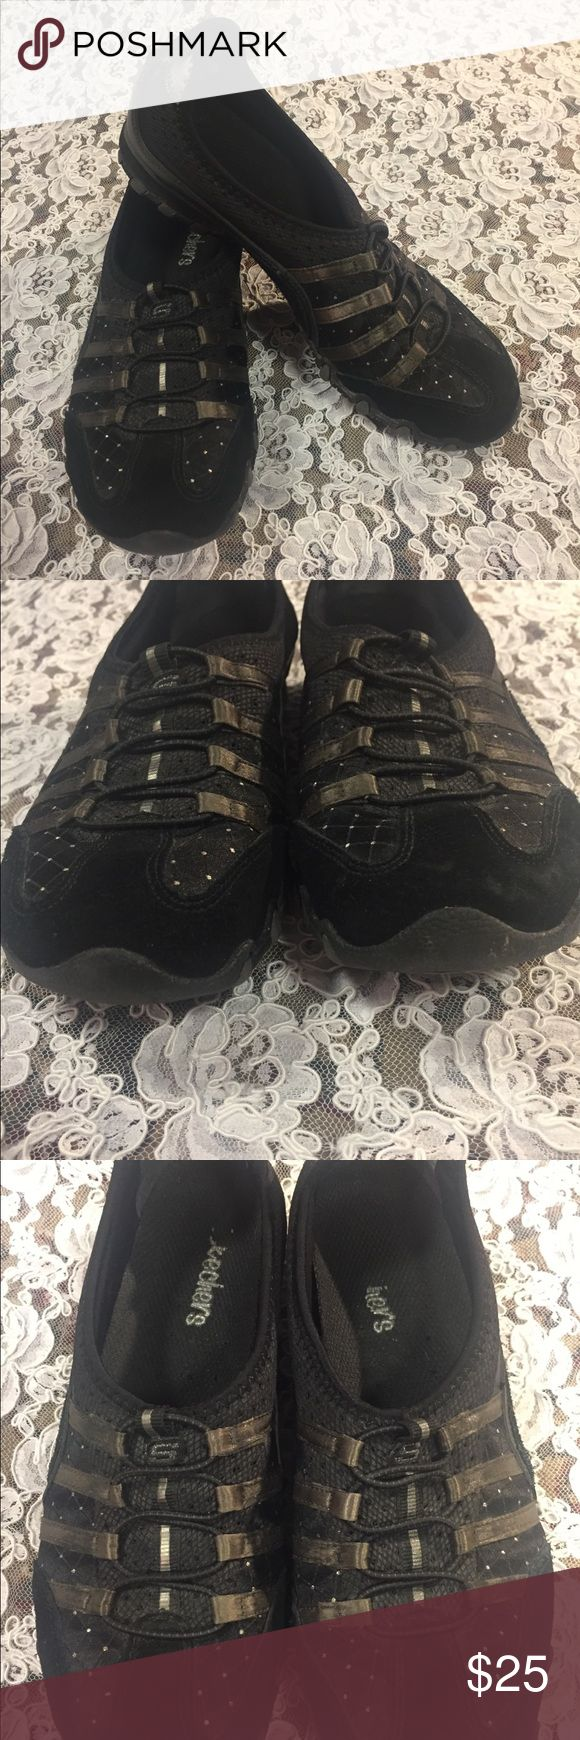 [Skechers] black slip on shoes 6 1/2 [Skechers] slip on shoes Black  Size 6 1/2 Good clean preowned condition  Please see pics for normal wear Skechers Shoes